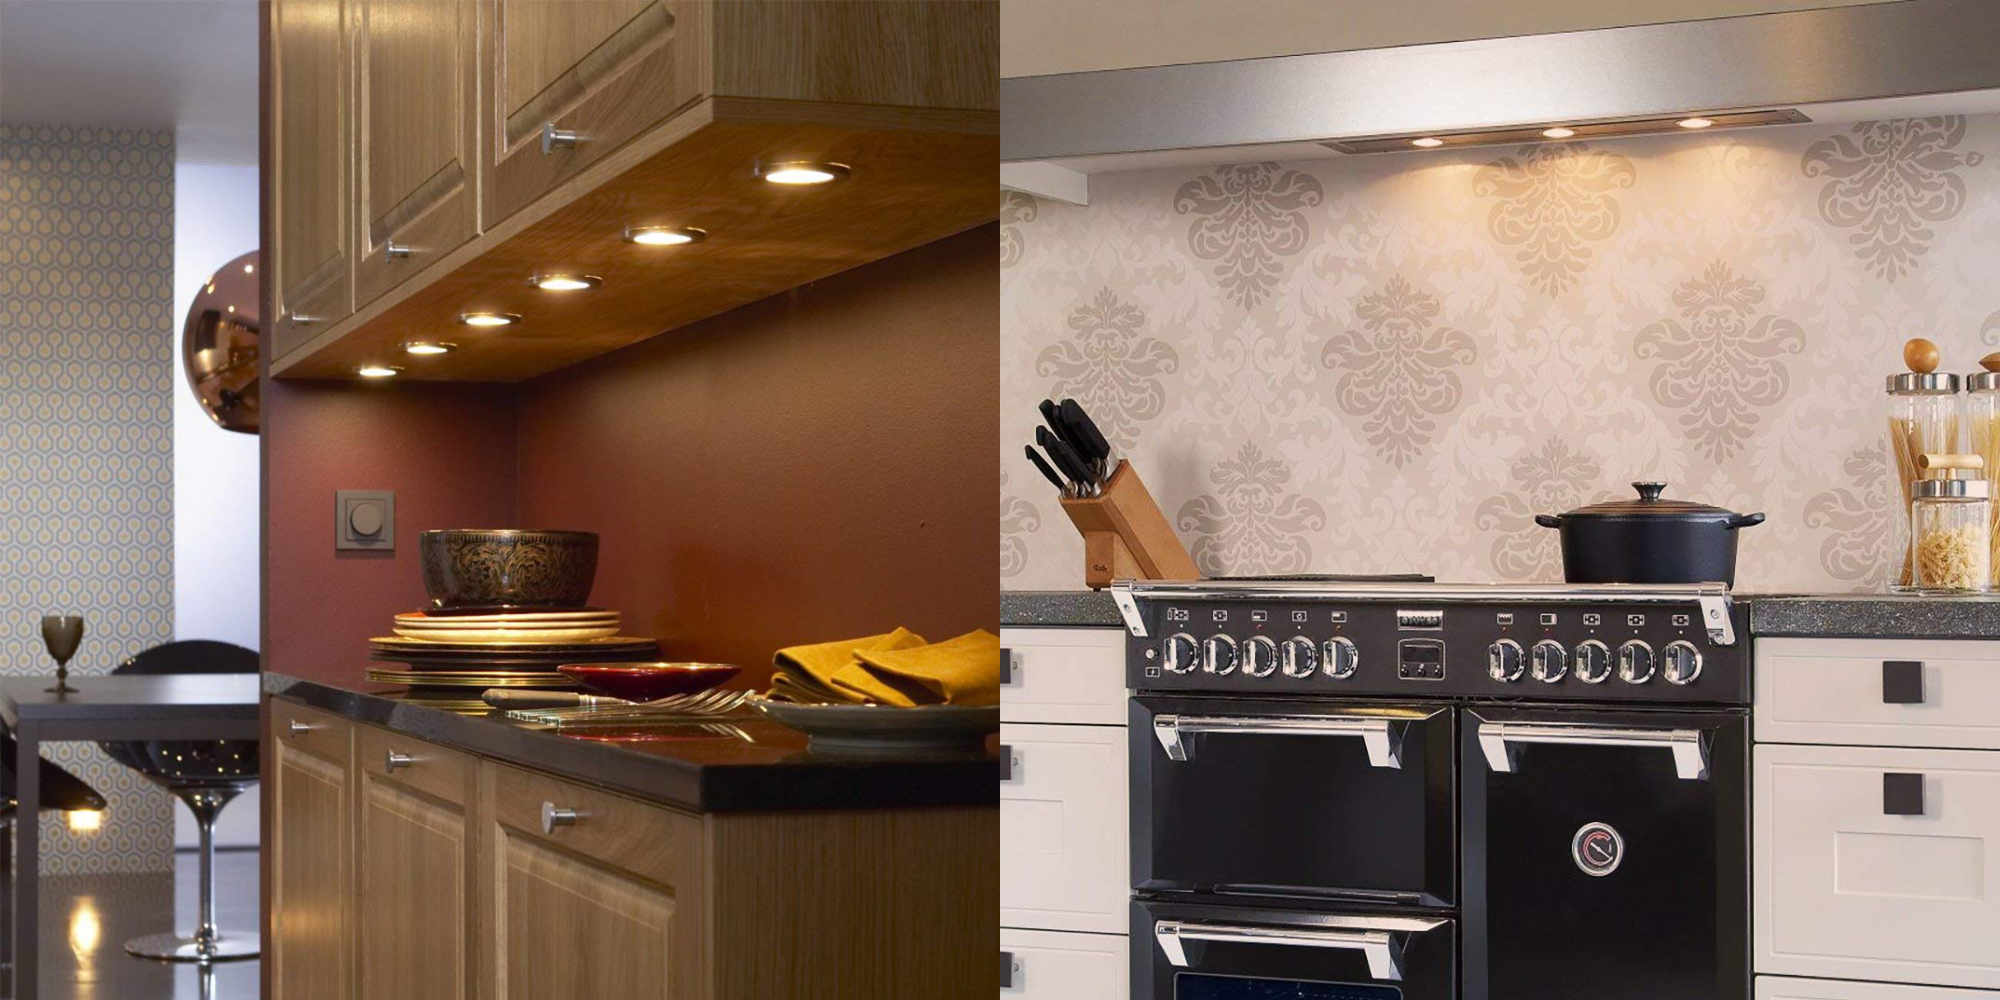 Under Cabinet Lighting Kit For An All Time Low Of $10 (50% Off)